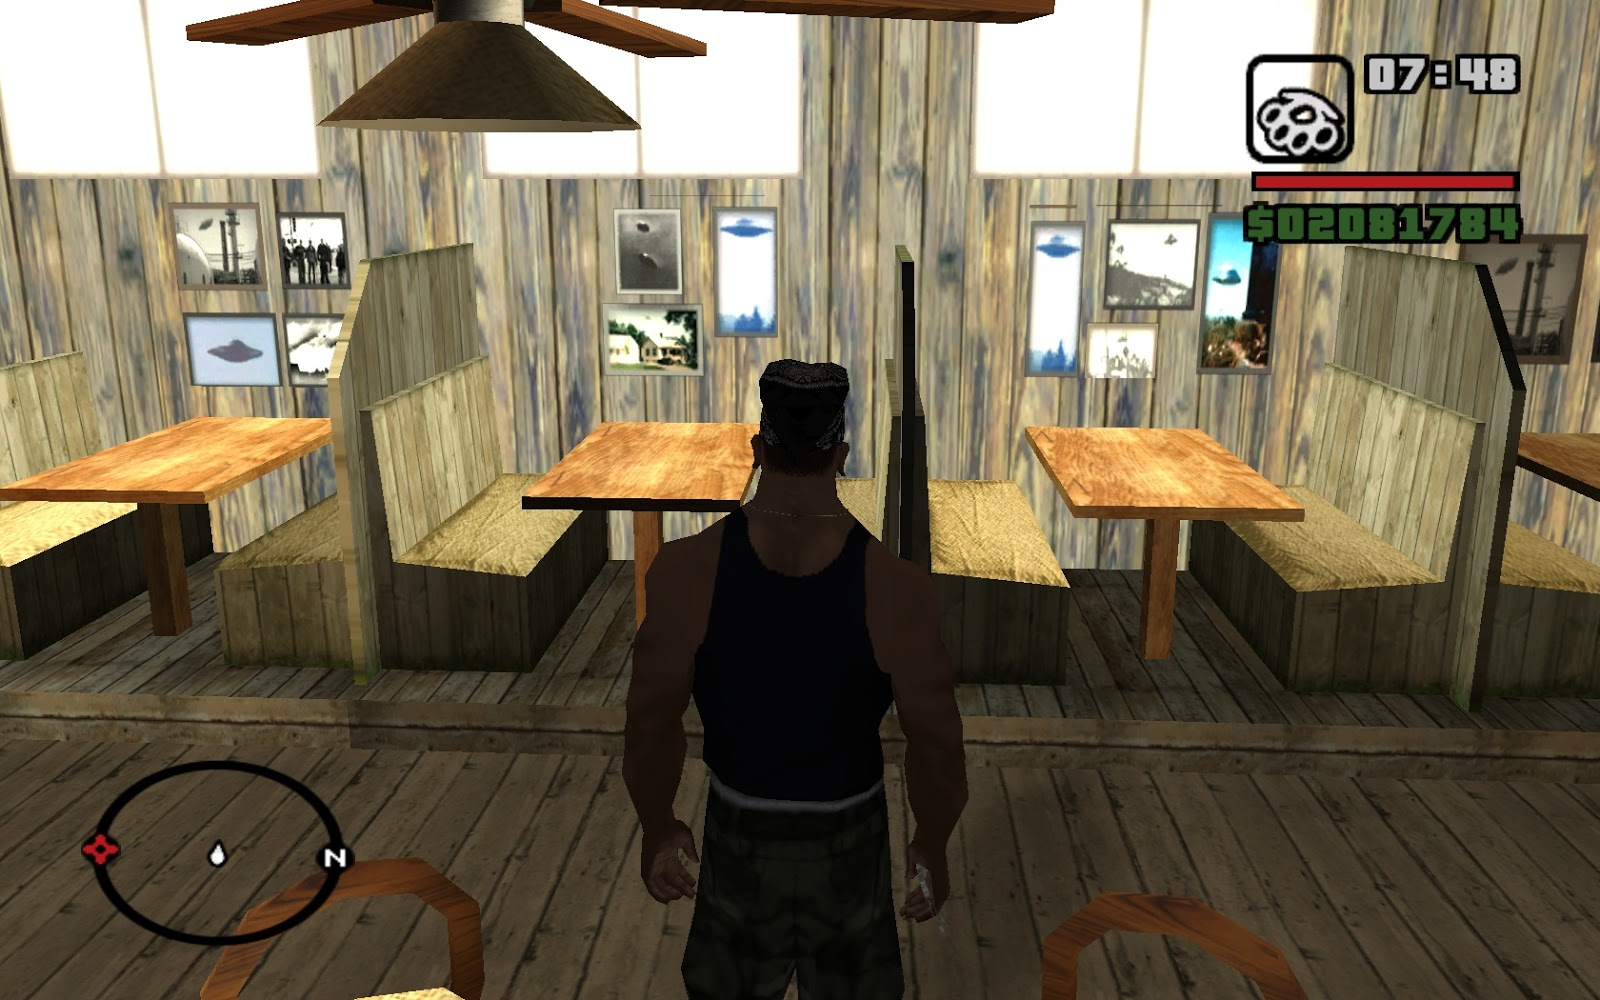 Grand theft auto san andreas 2004 video game billy meier ufos in